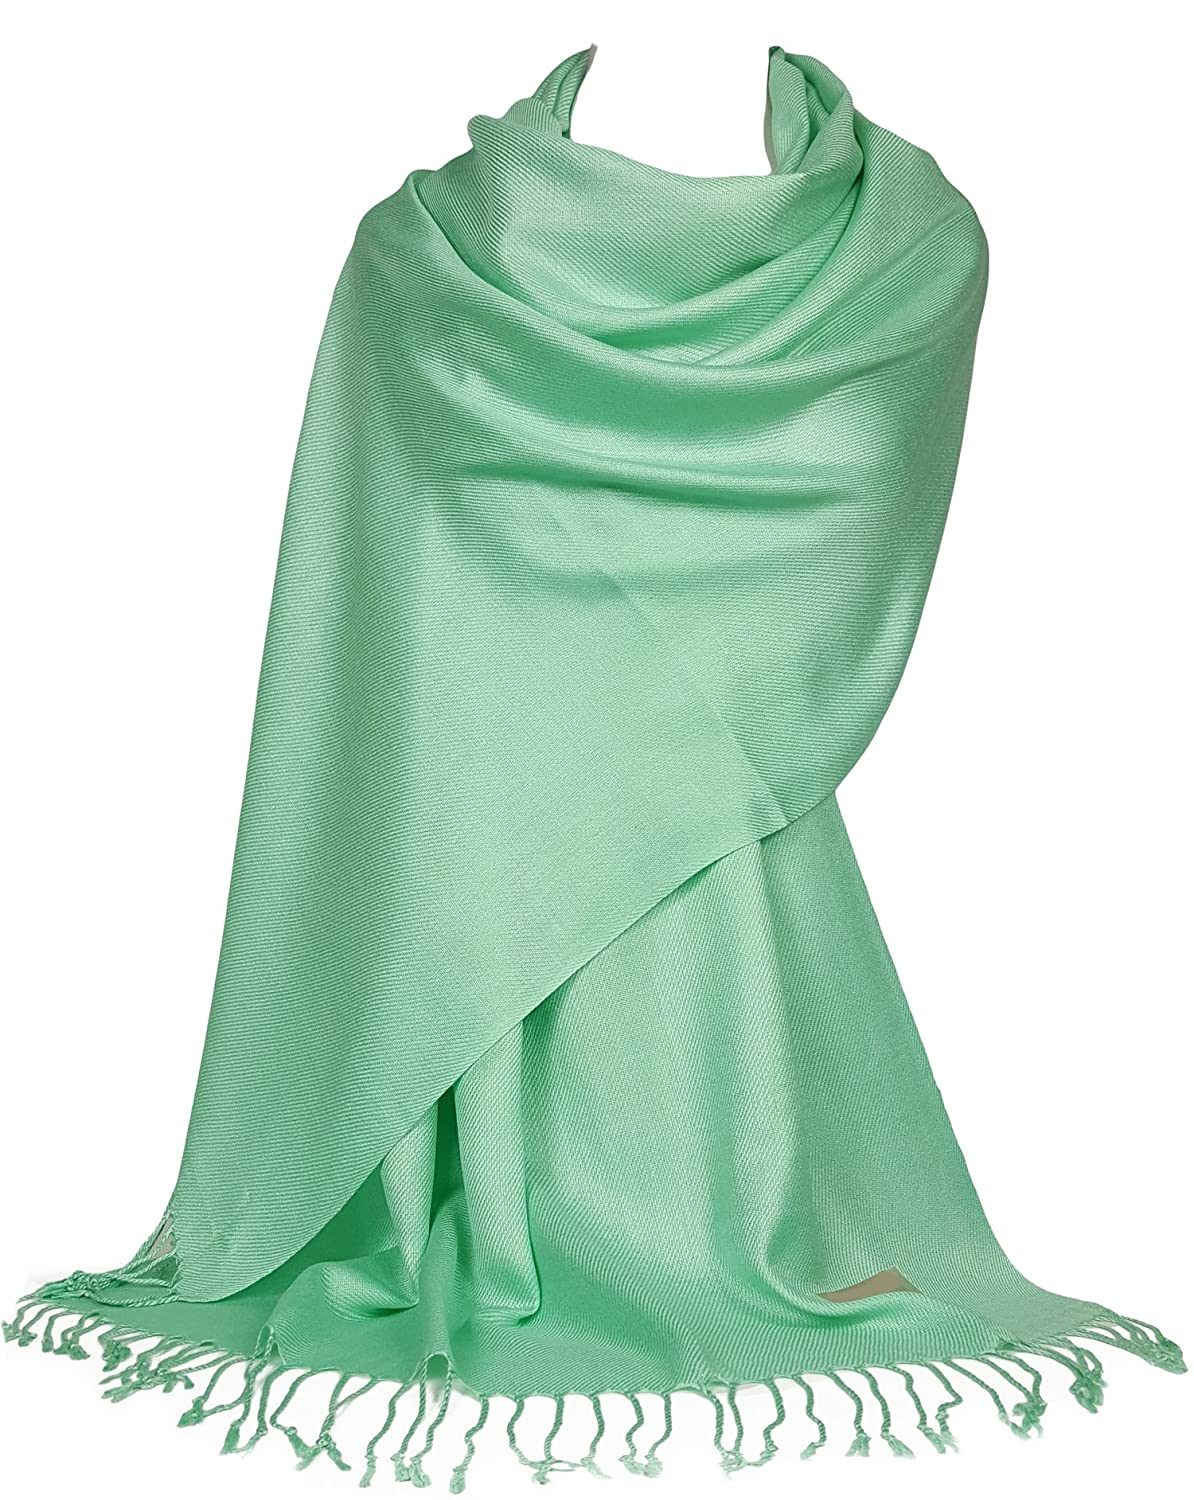 GFM® Pashmina Style Wrap Scarf - All Seasons - Twill Weave Soft